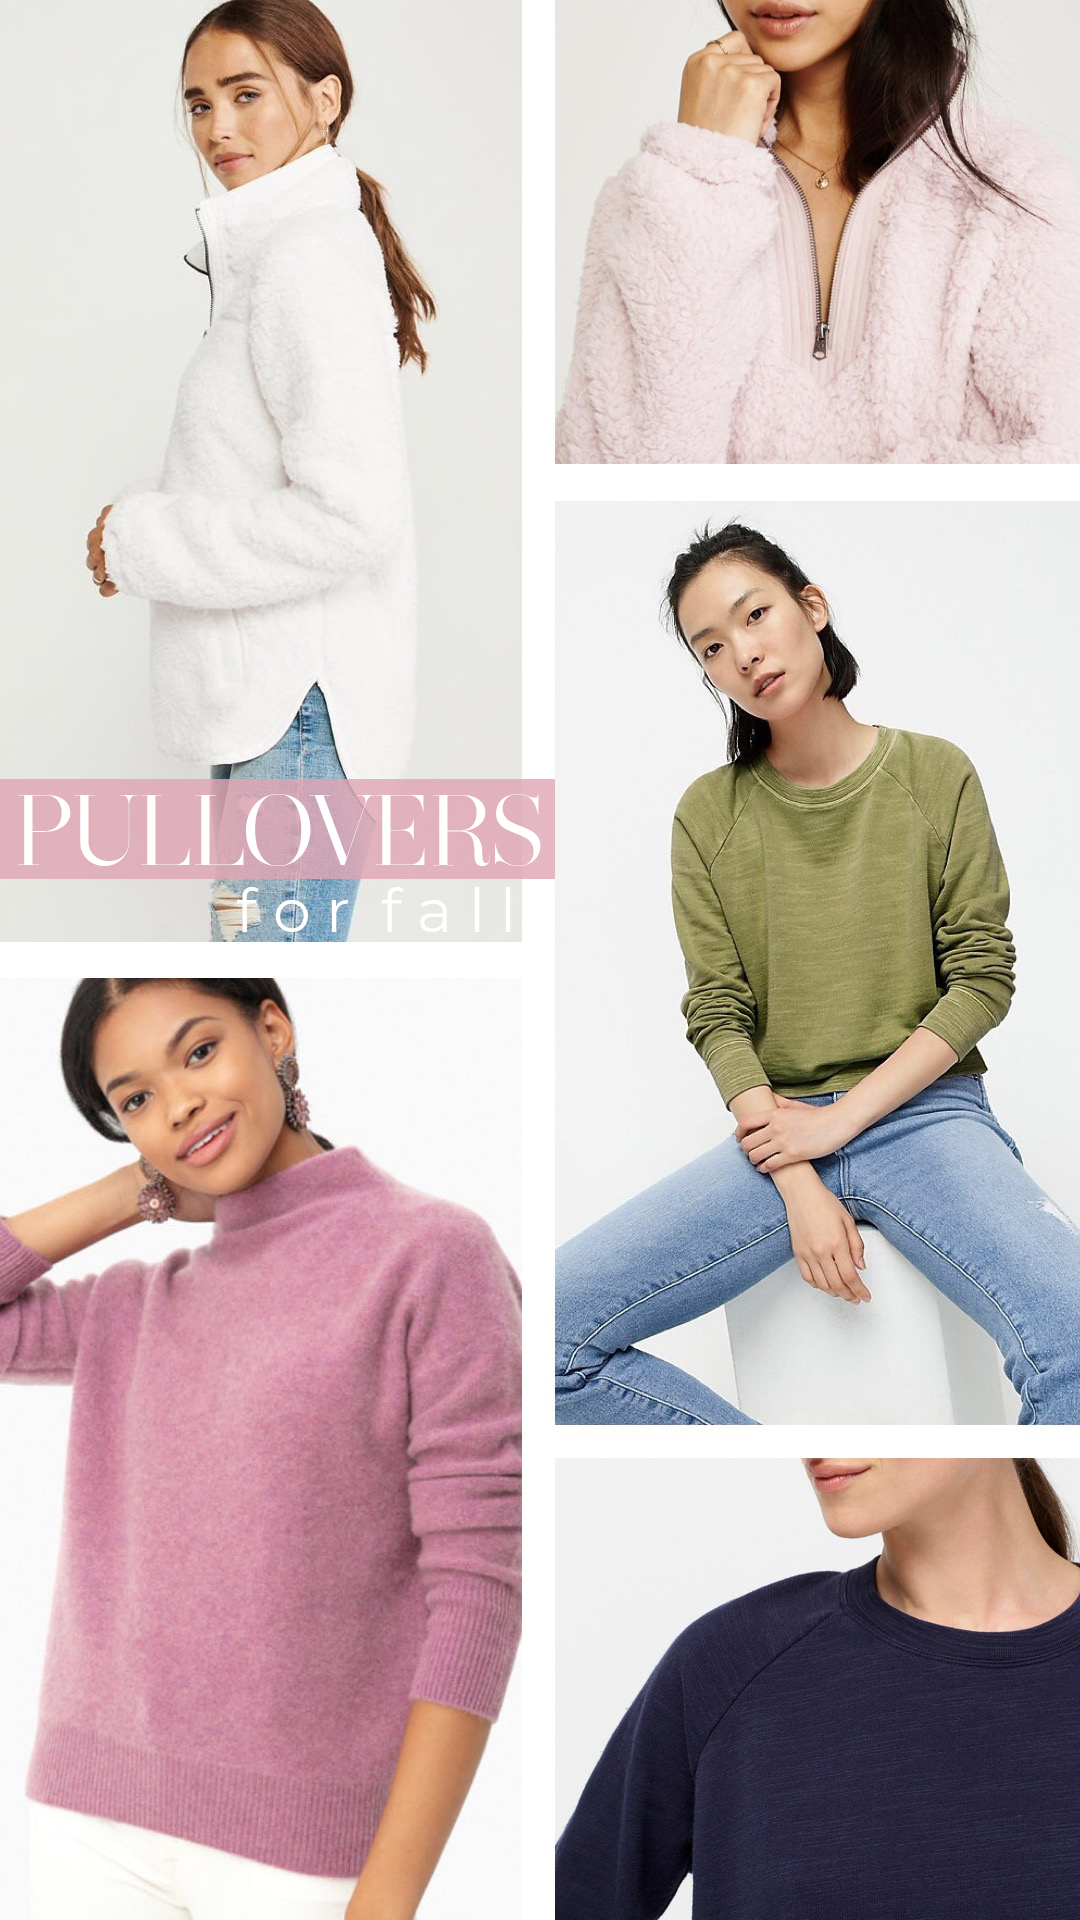 Pullover Sweaters for Fall